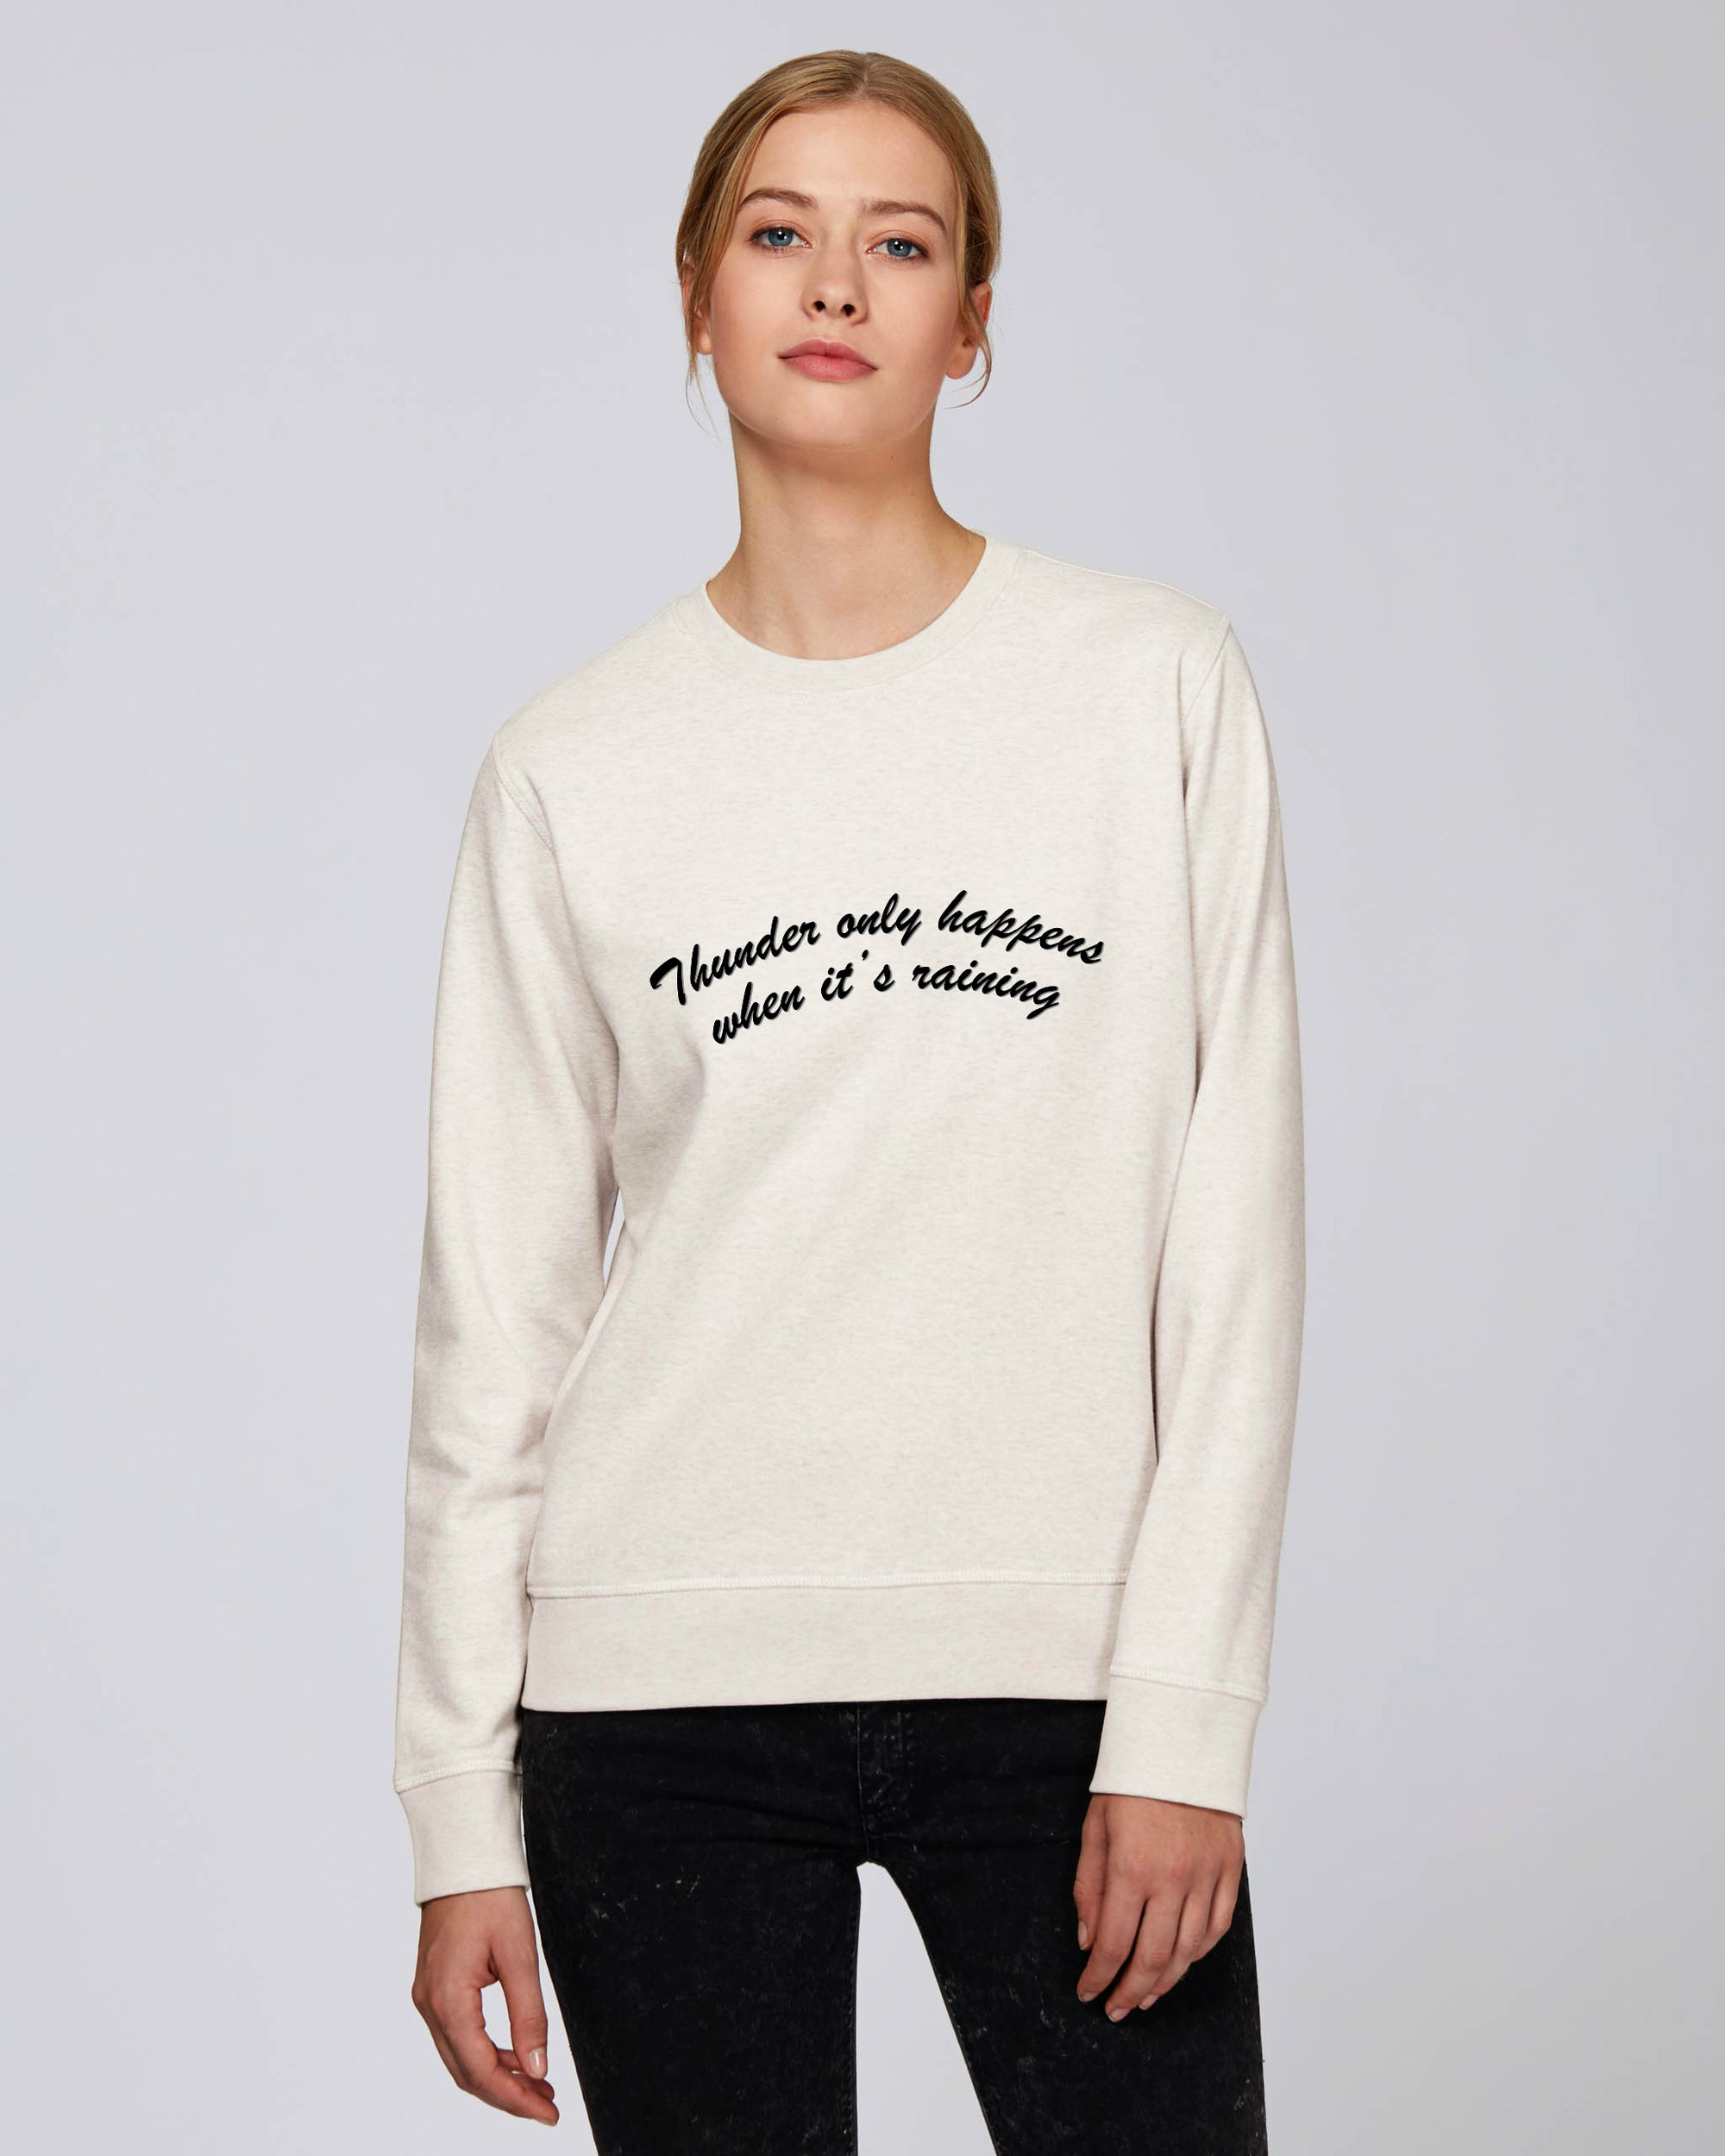 'THUNDER ONLY HAPPENS WHEN IT'S RAINING' EMBROIDERED ORGANIC COTTON FITTED UNISEX SWEATSHIRT